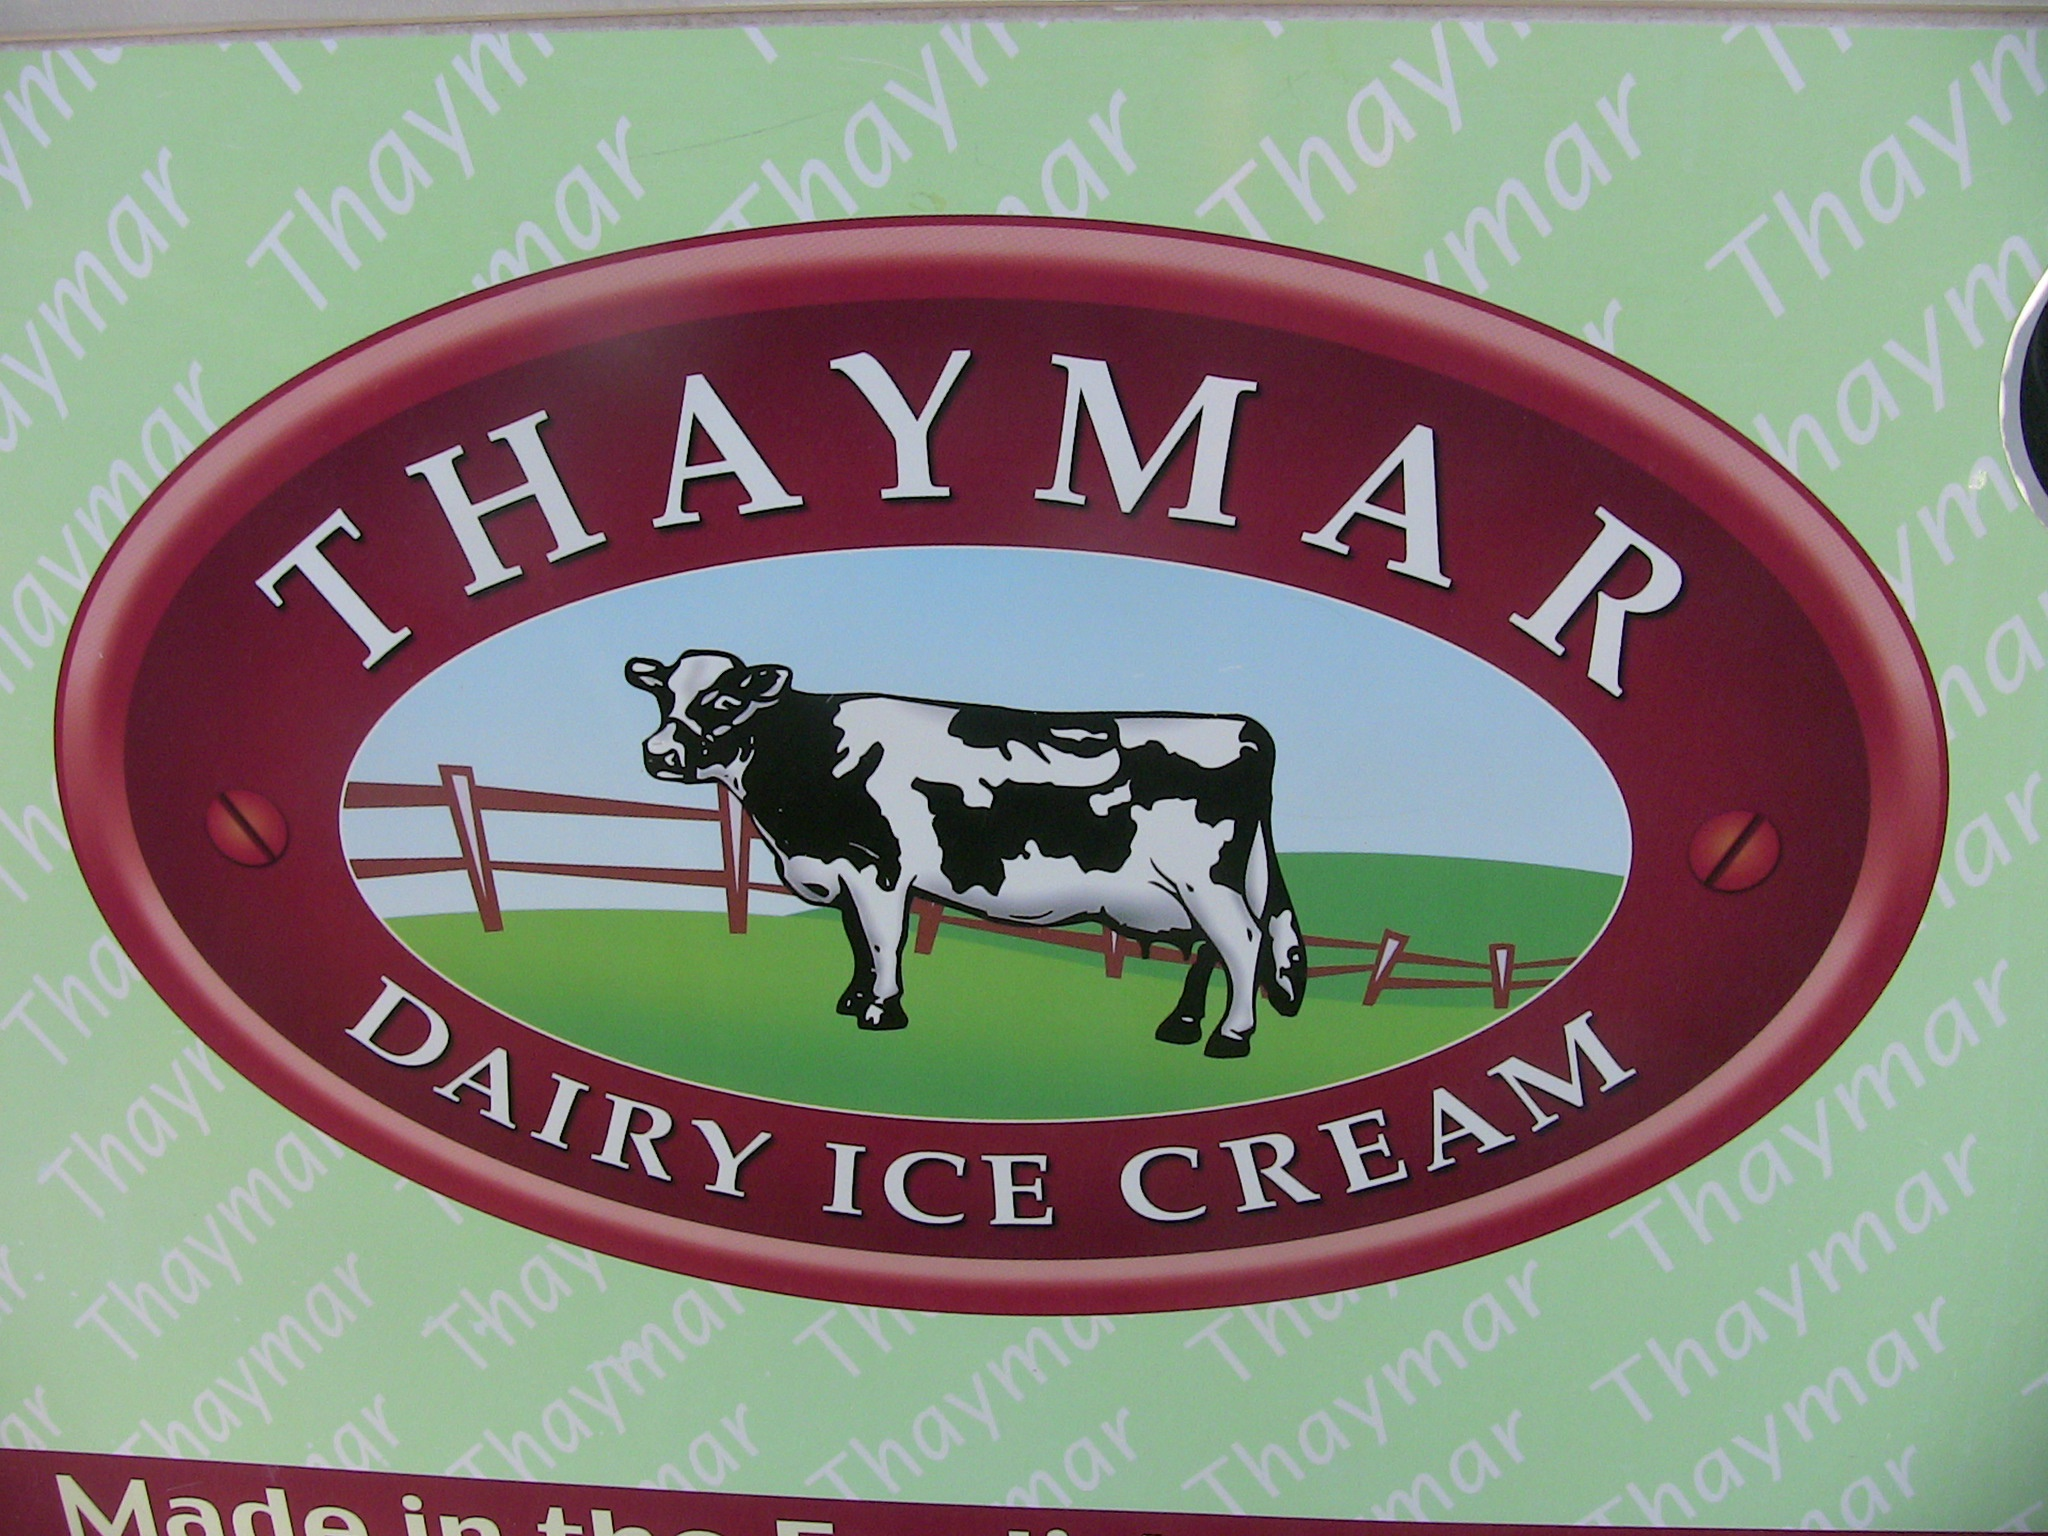 Thaymar Ice Cream